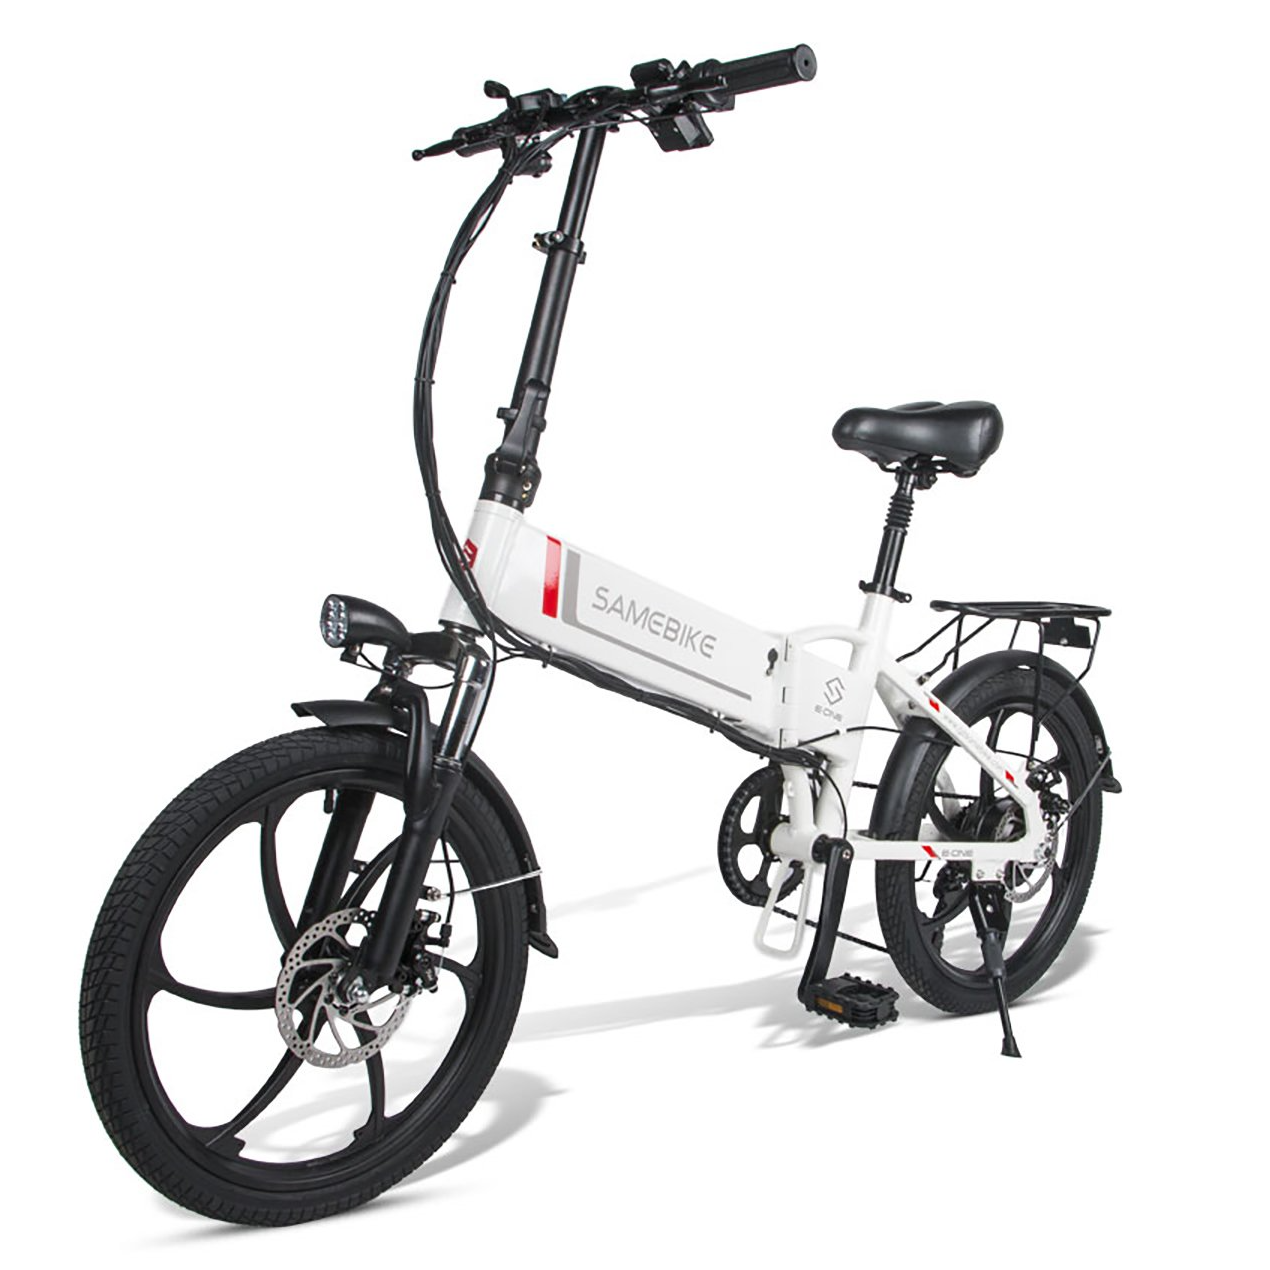 SAMEBIKE 20LVXD30 Folding Electric Bike 20 Inch Tires 350W Motor 10.4Ah Battery Max 35 KPH Ship from Poland Warehouse